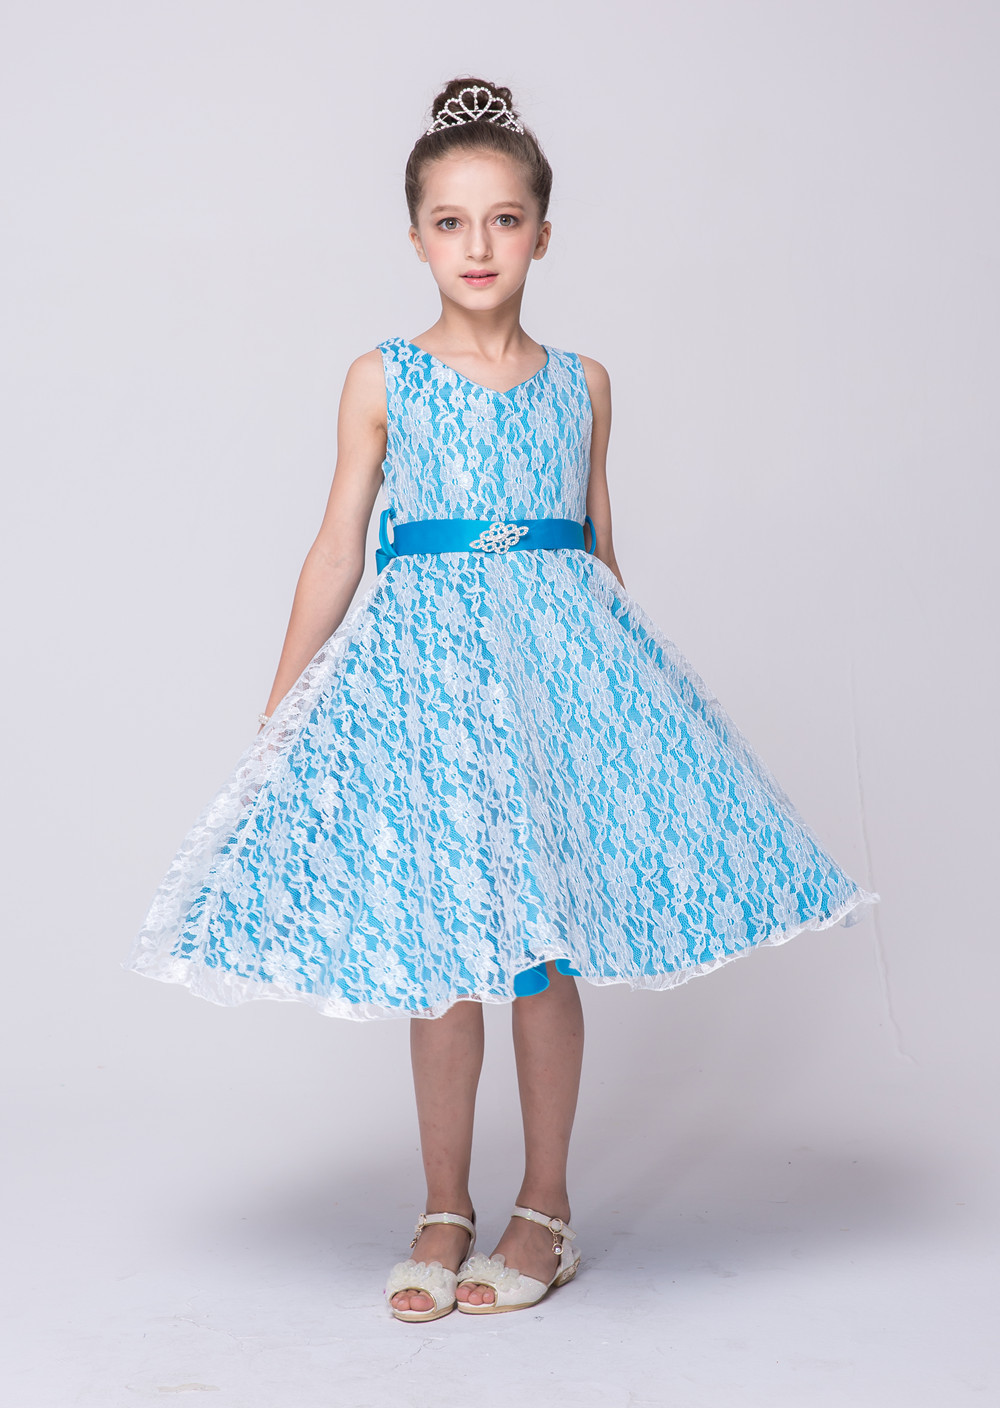 Children Prom Clothes Princess Flower Girl Dress Baby Kids Party Wear Gowns Blue and White Wedding Party Dress Girls цена